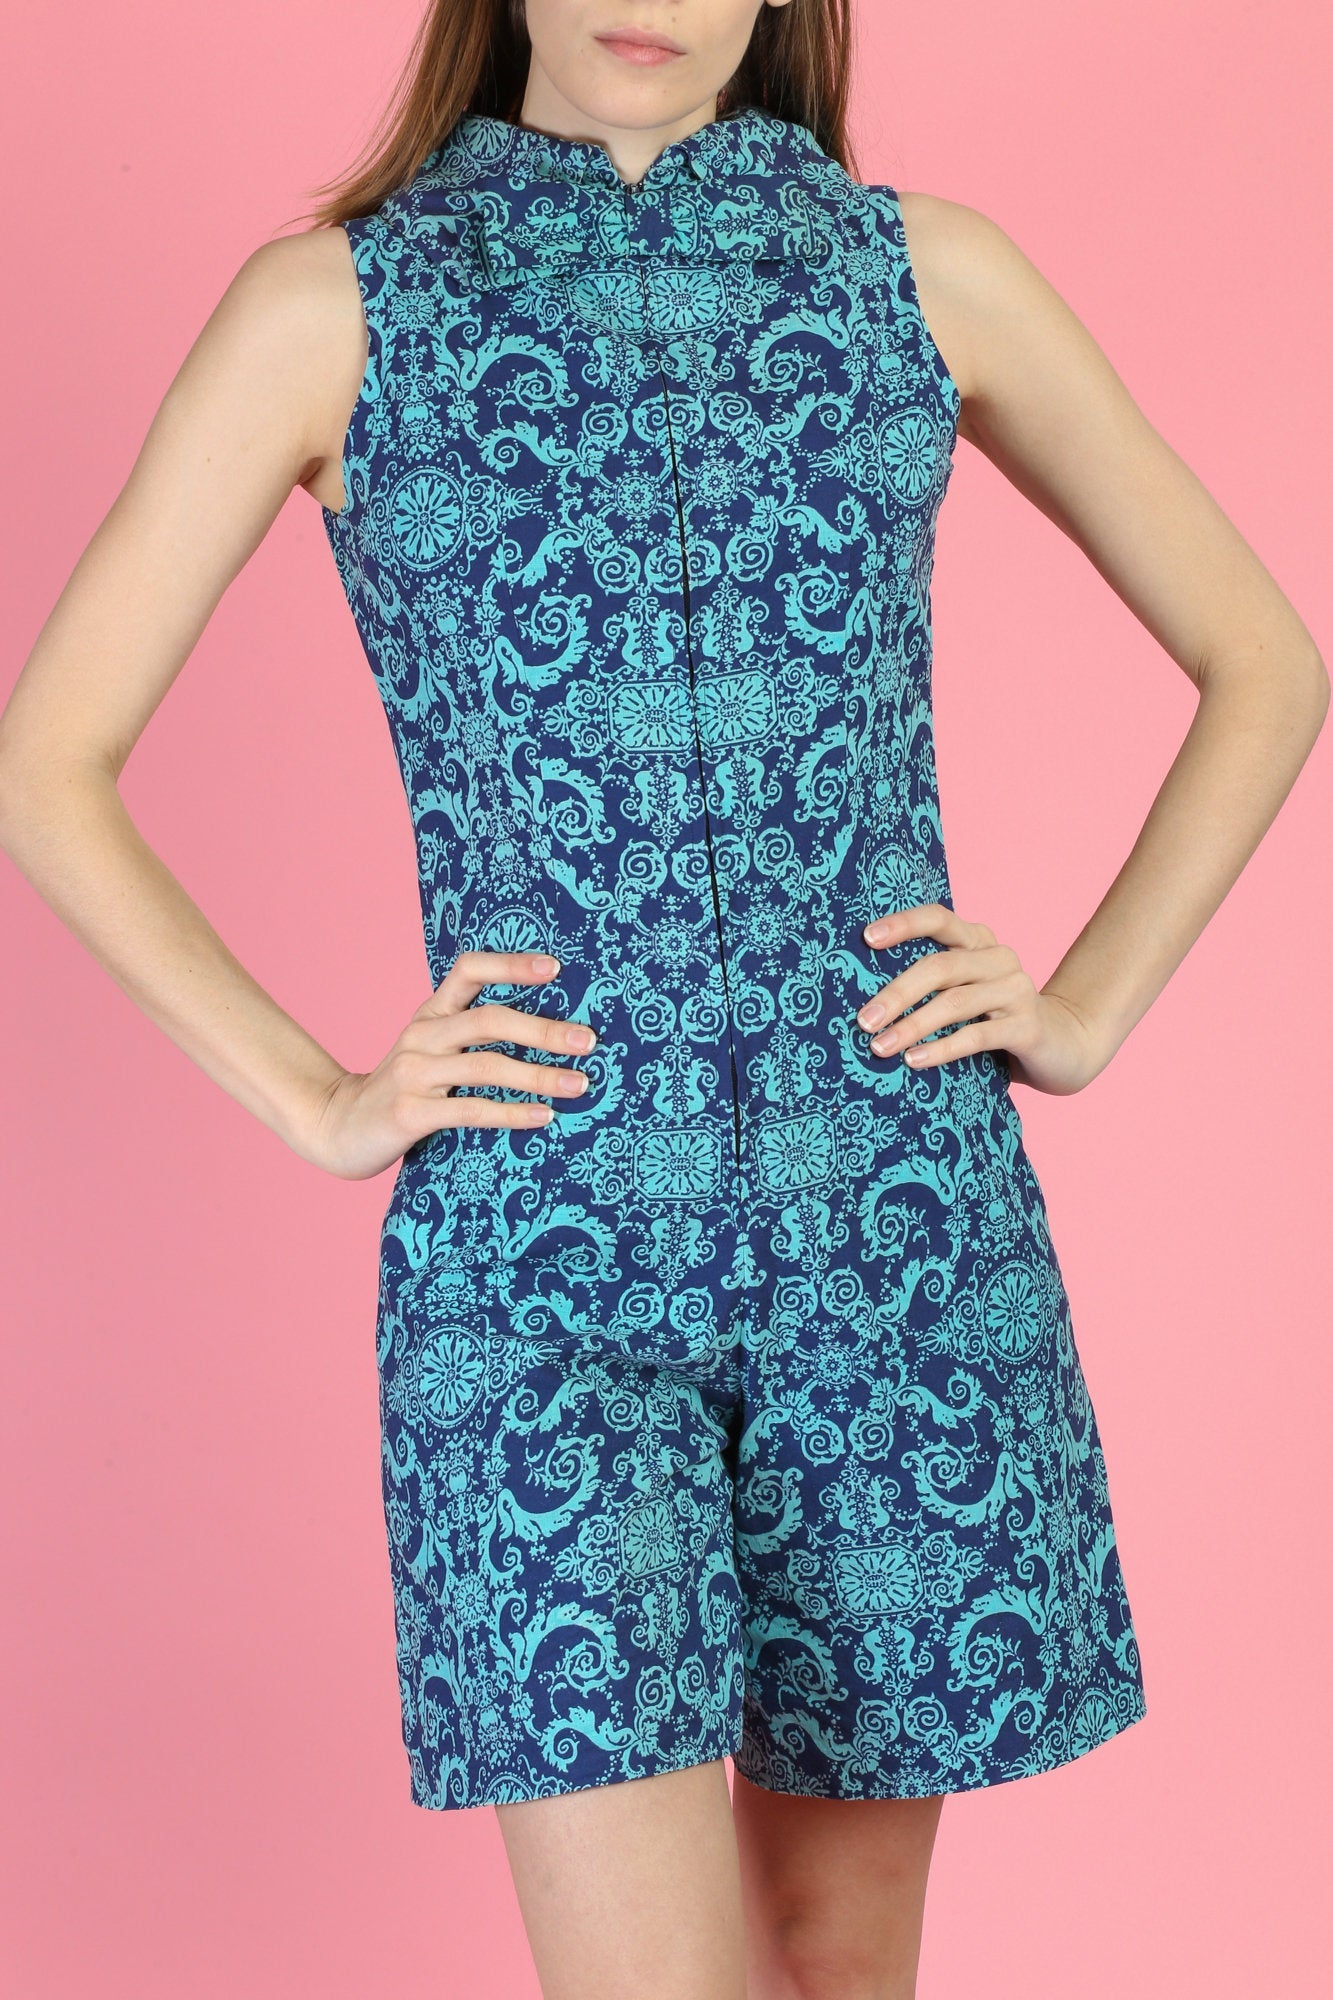 Vintage 60s Blue Bow Tie Romper - Small